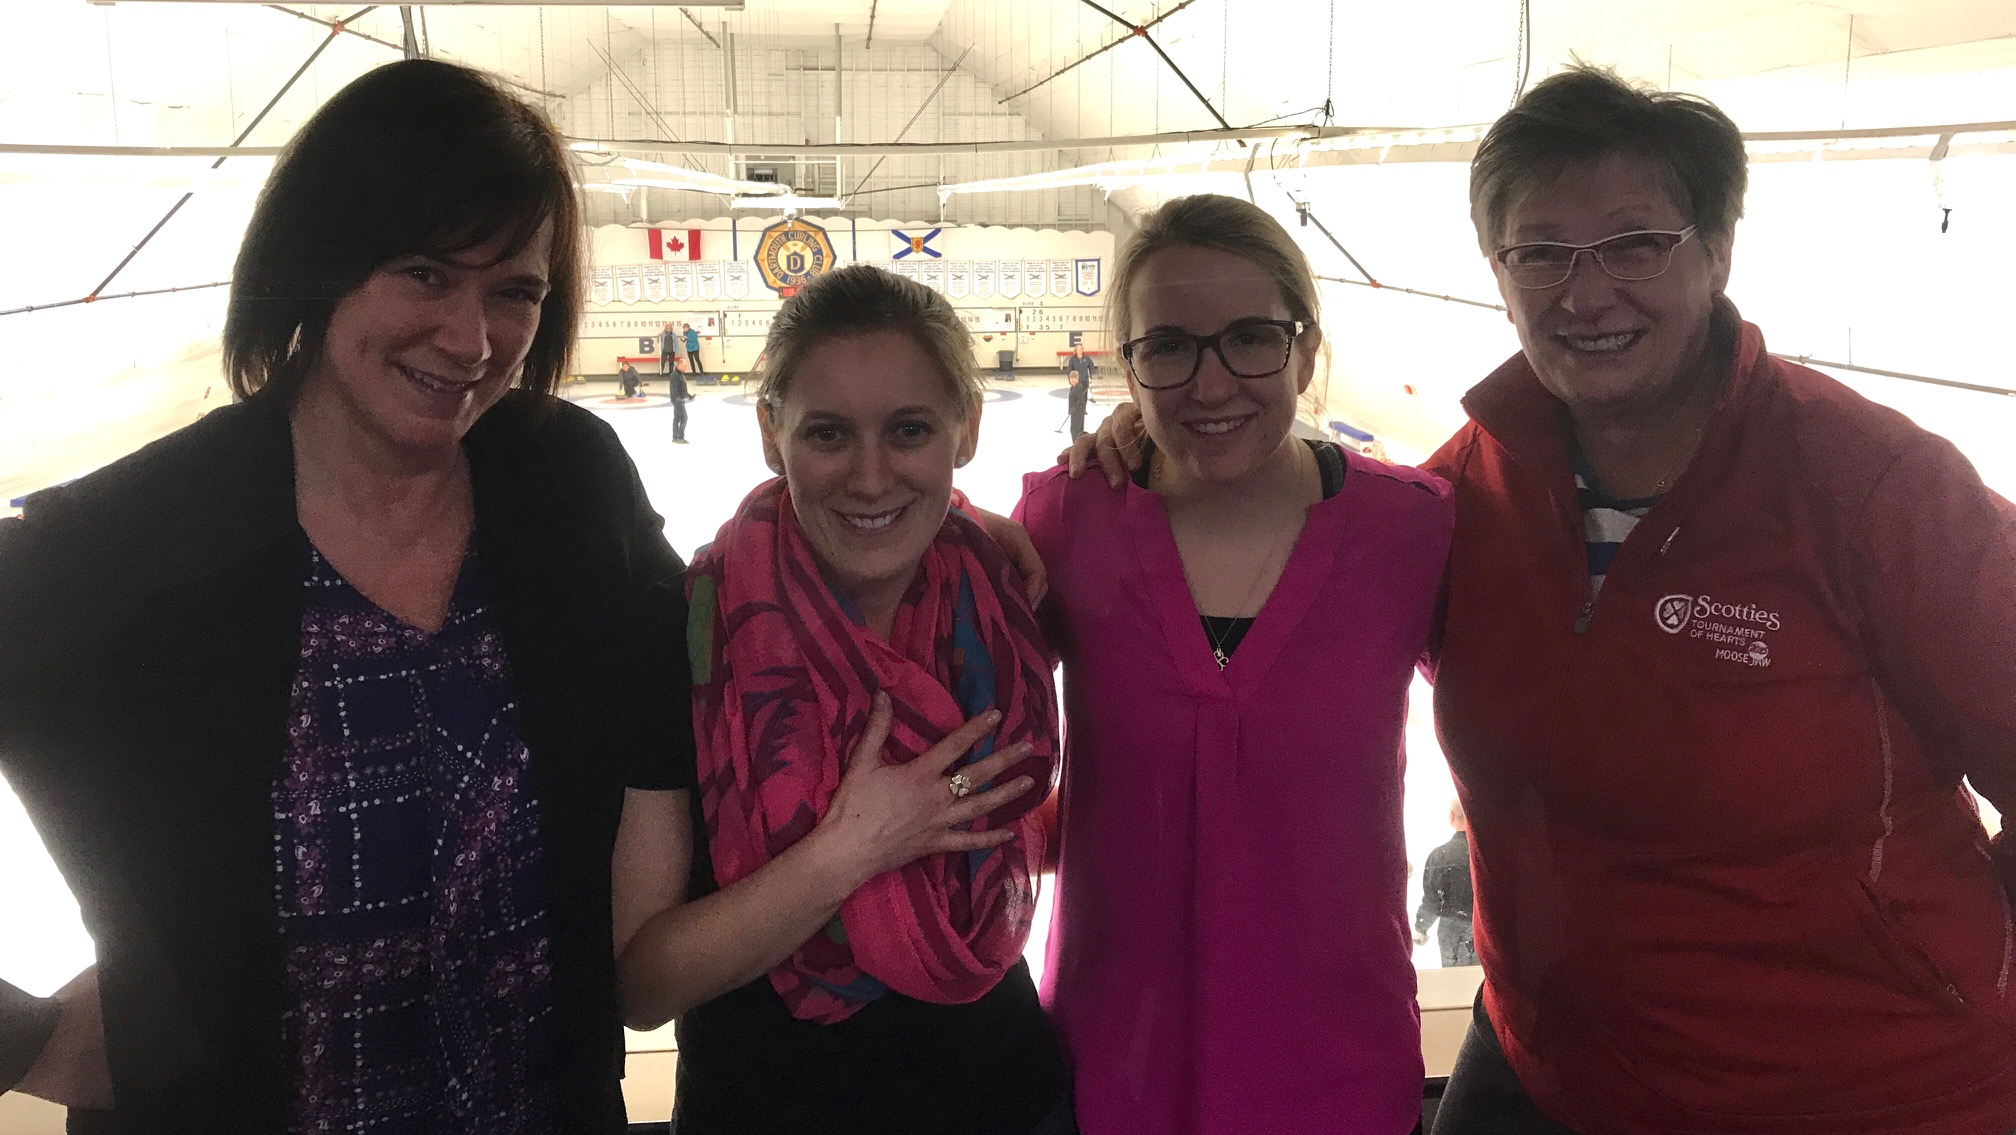 Skip Mary-Anne Arsenault, Second Jenn Baxter, Third Christina Black and Coach Carole MacLean at the Dartmouth Curling Club on Wednesday. Baxter is showing off the ring awarded for winning bronze at this year's Scotties.